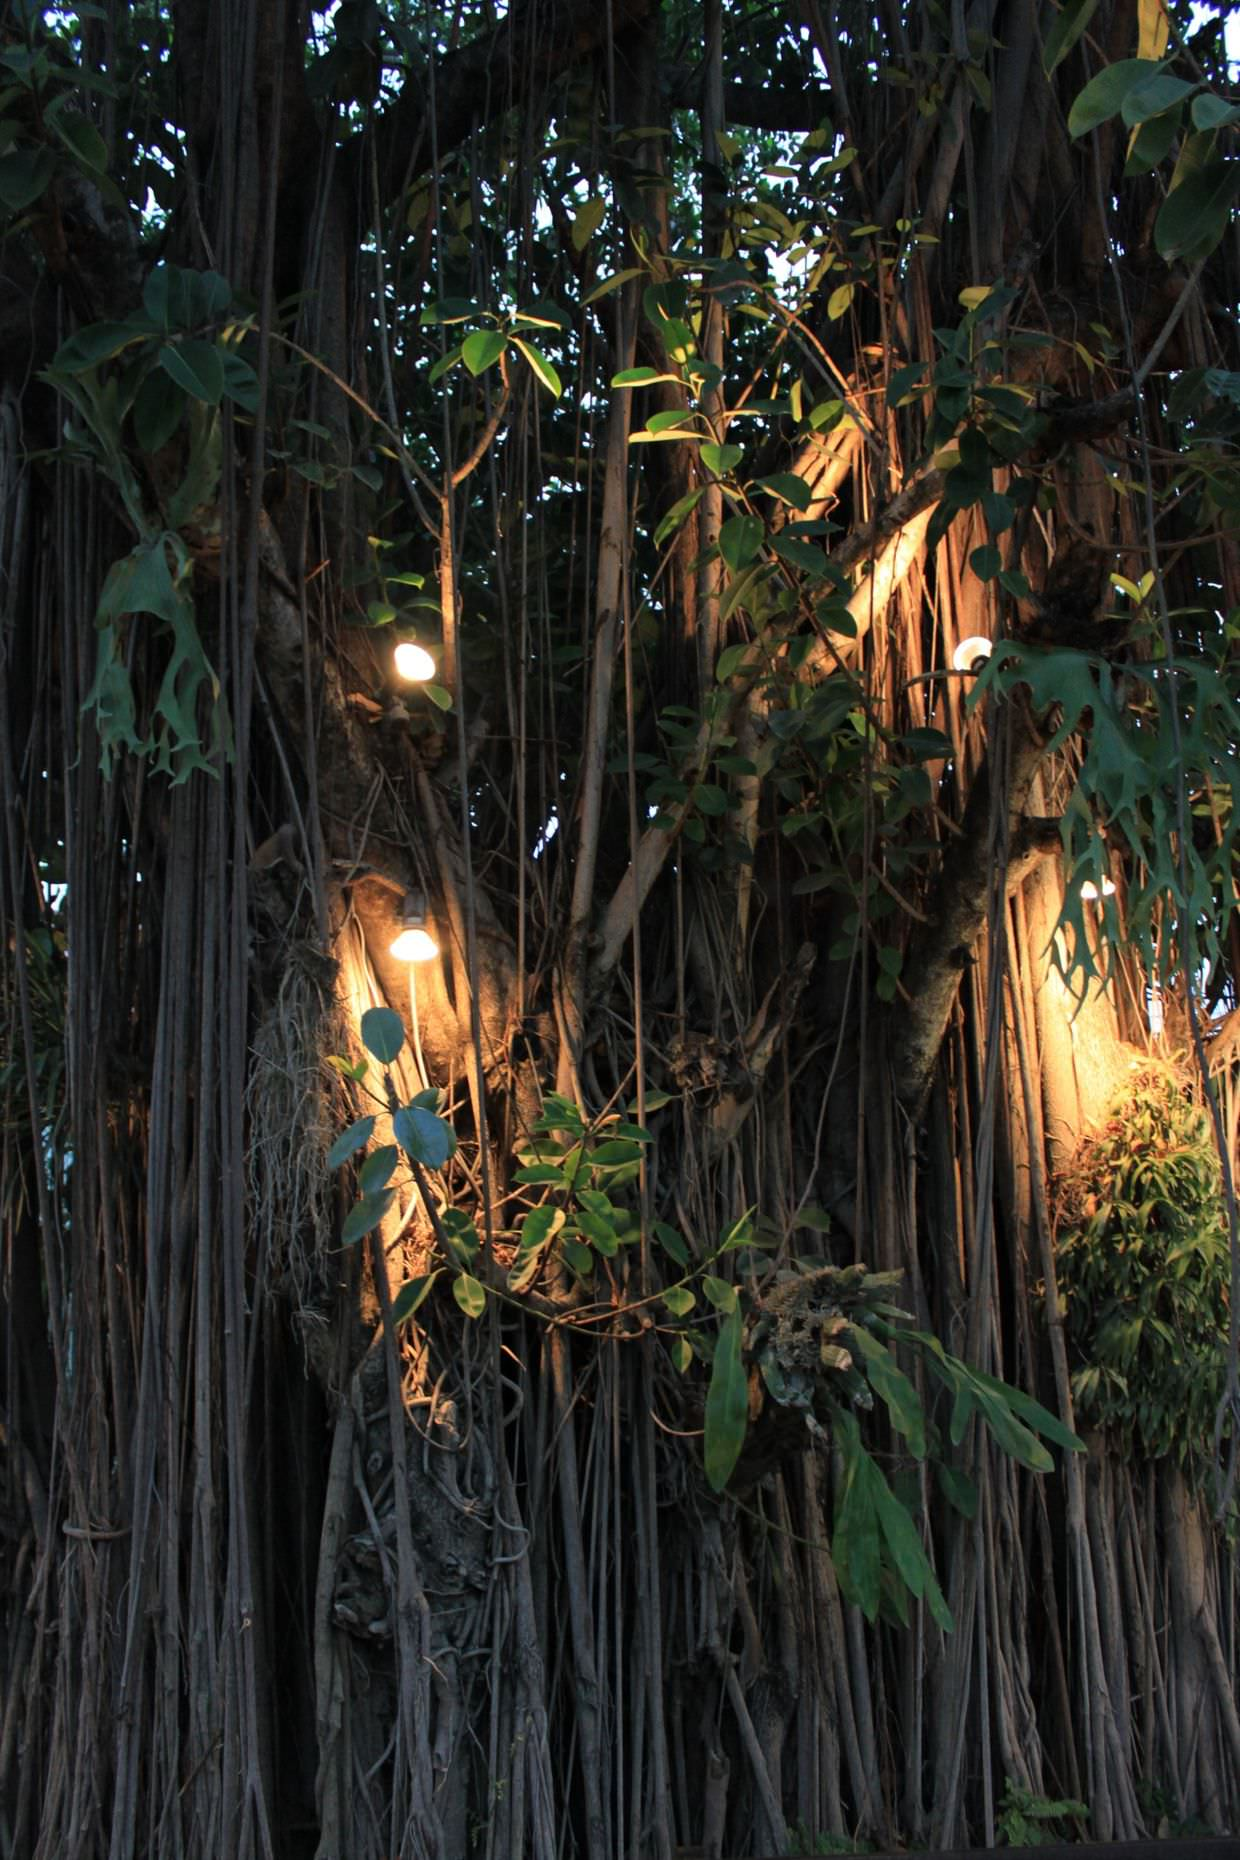 Banyan tree at Rimping Village